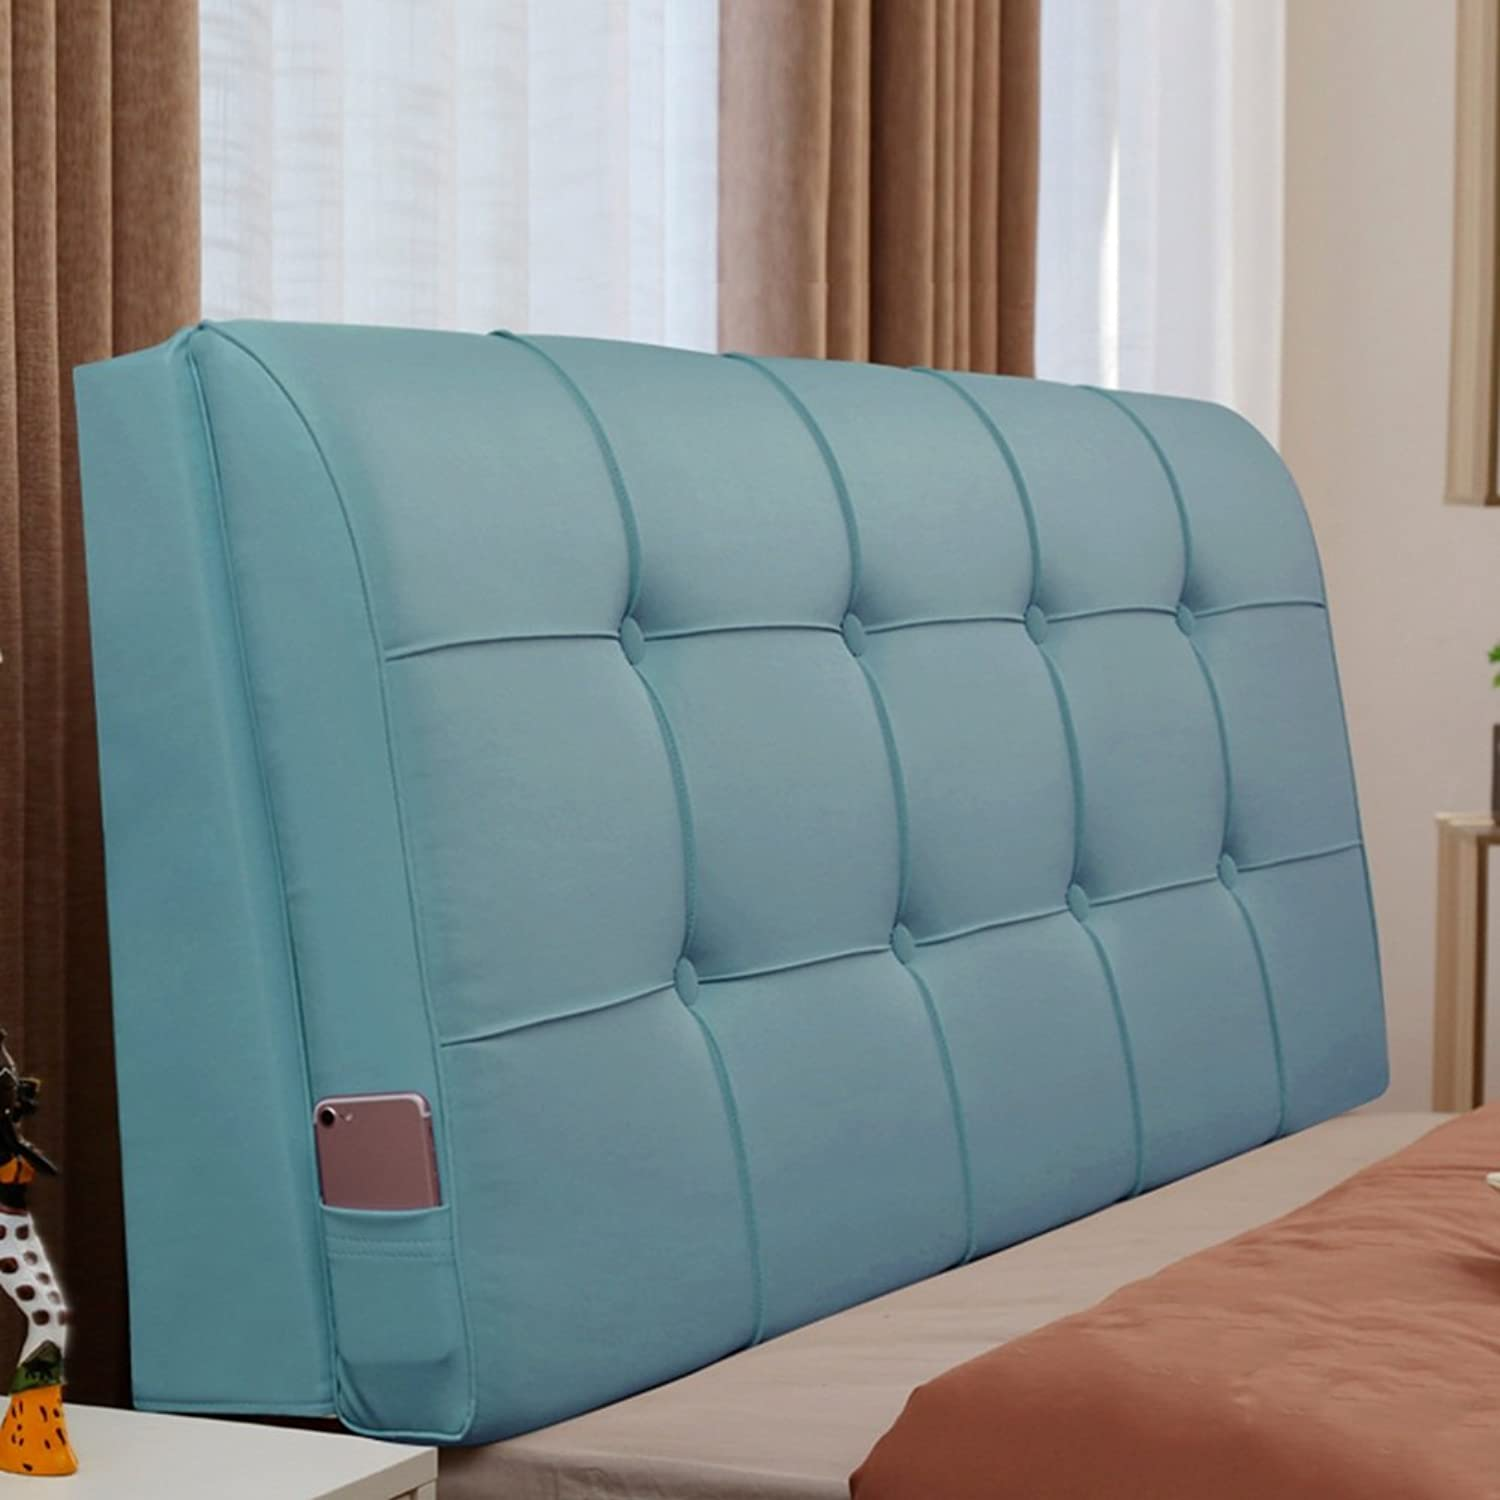 WENZHE Upholstered Fabric Headboard Bedside Cushion Pads Cover Bed Wedges Backrest Waist Pad Soft Case Bedroom Bedside Backrest Waterproof, There Is Headboard   No Headboard, 7 colors, 7 Sizes ( color   6  , Size   With headboard-200cm )